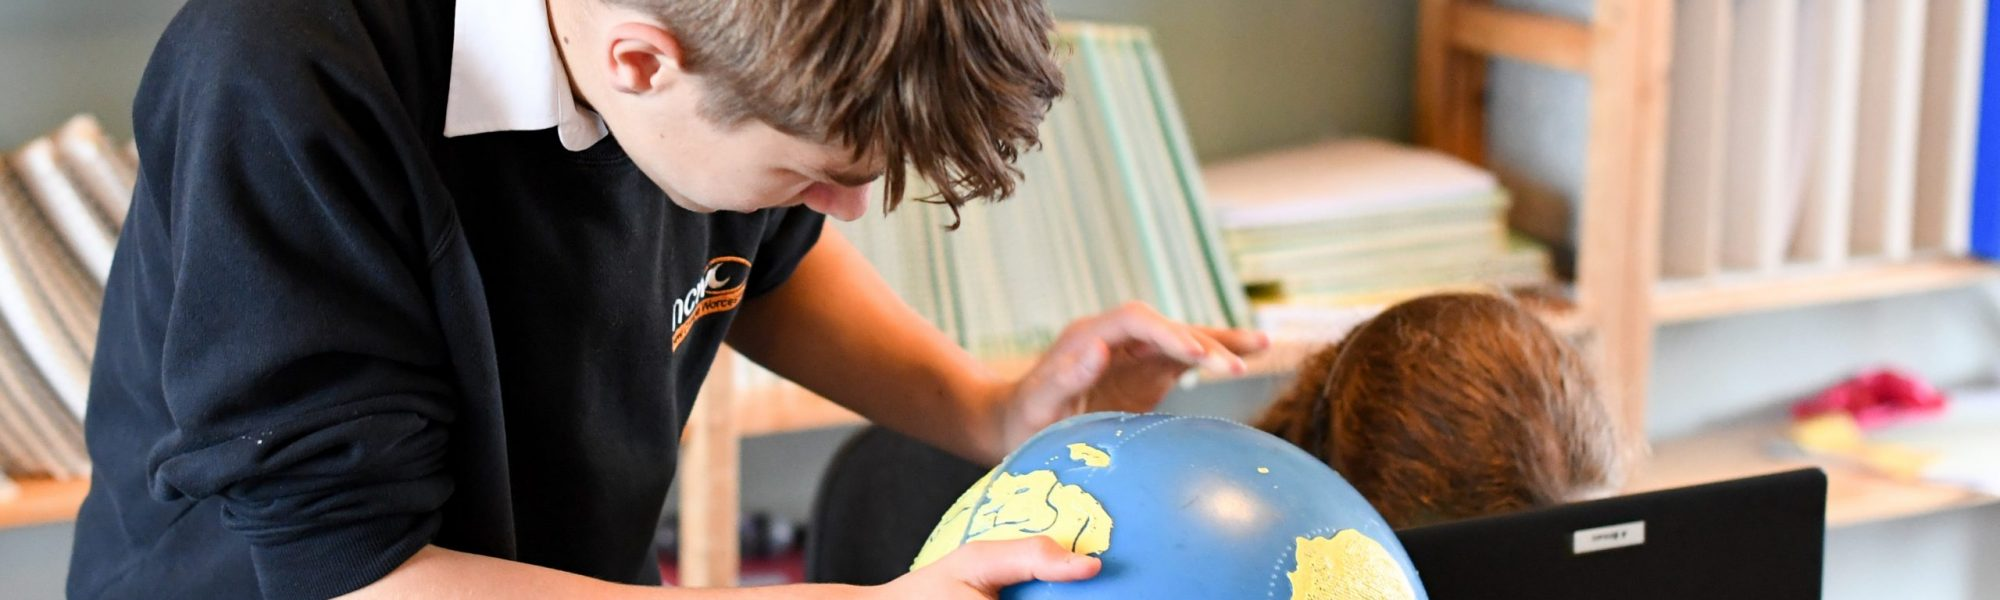 Student using a globe in Geography